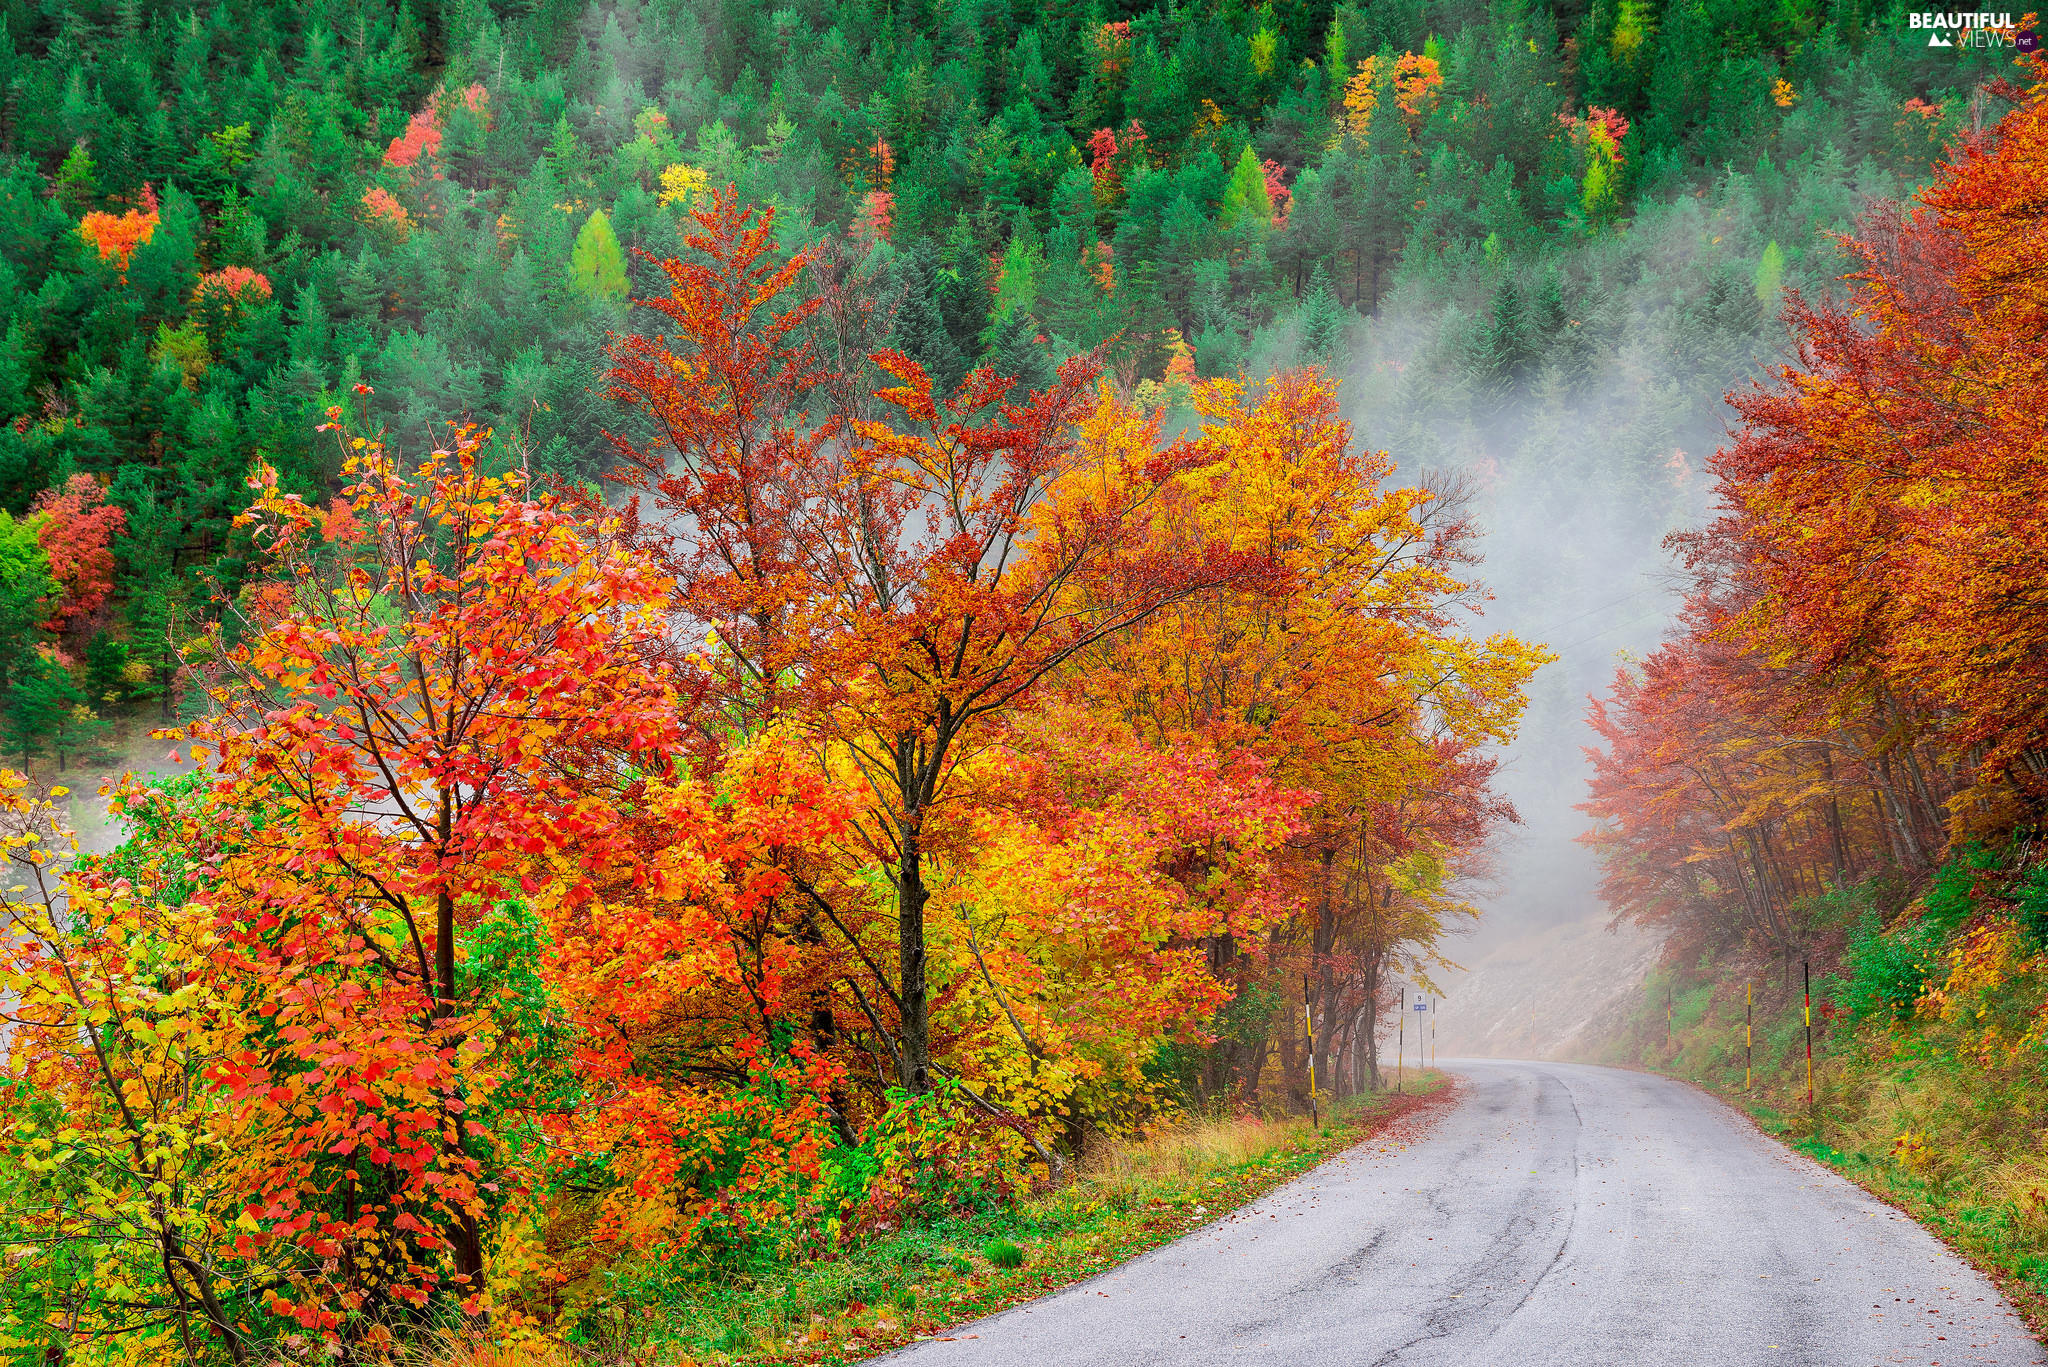 autumn, Way, trees, Fog, forest, color, viewes